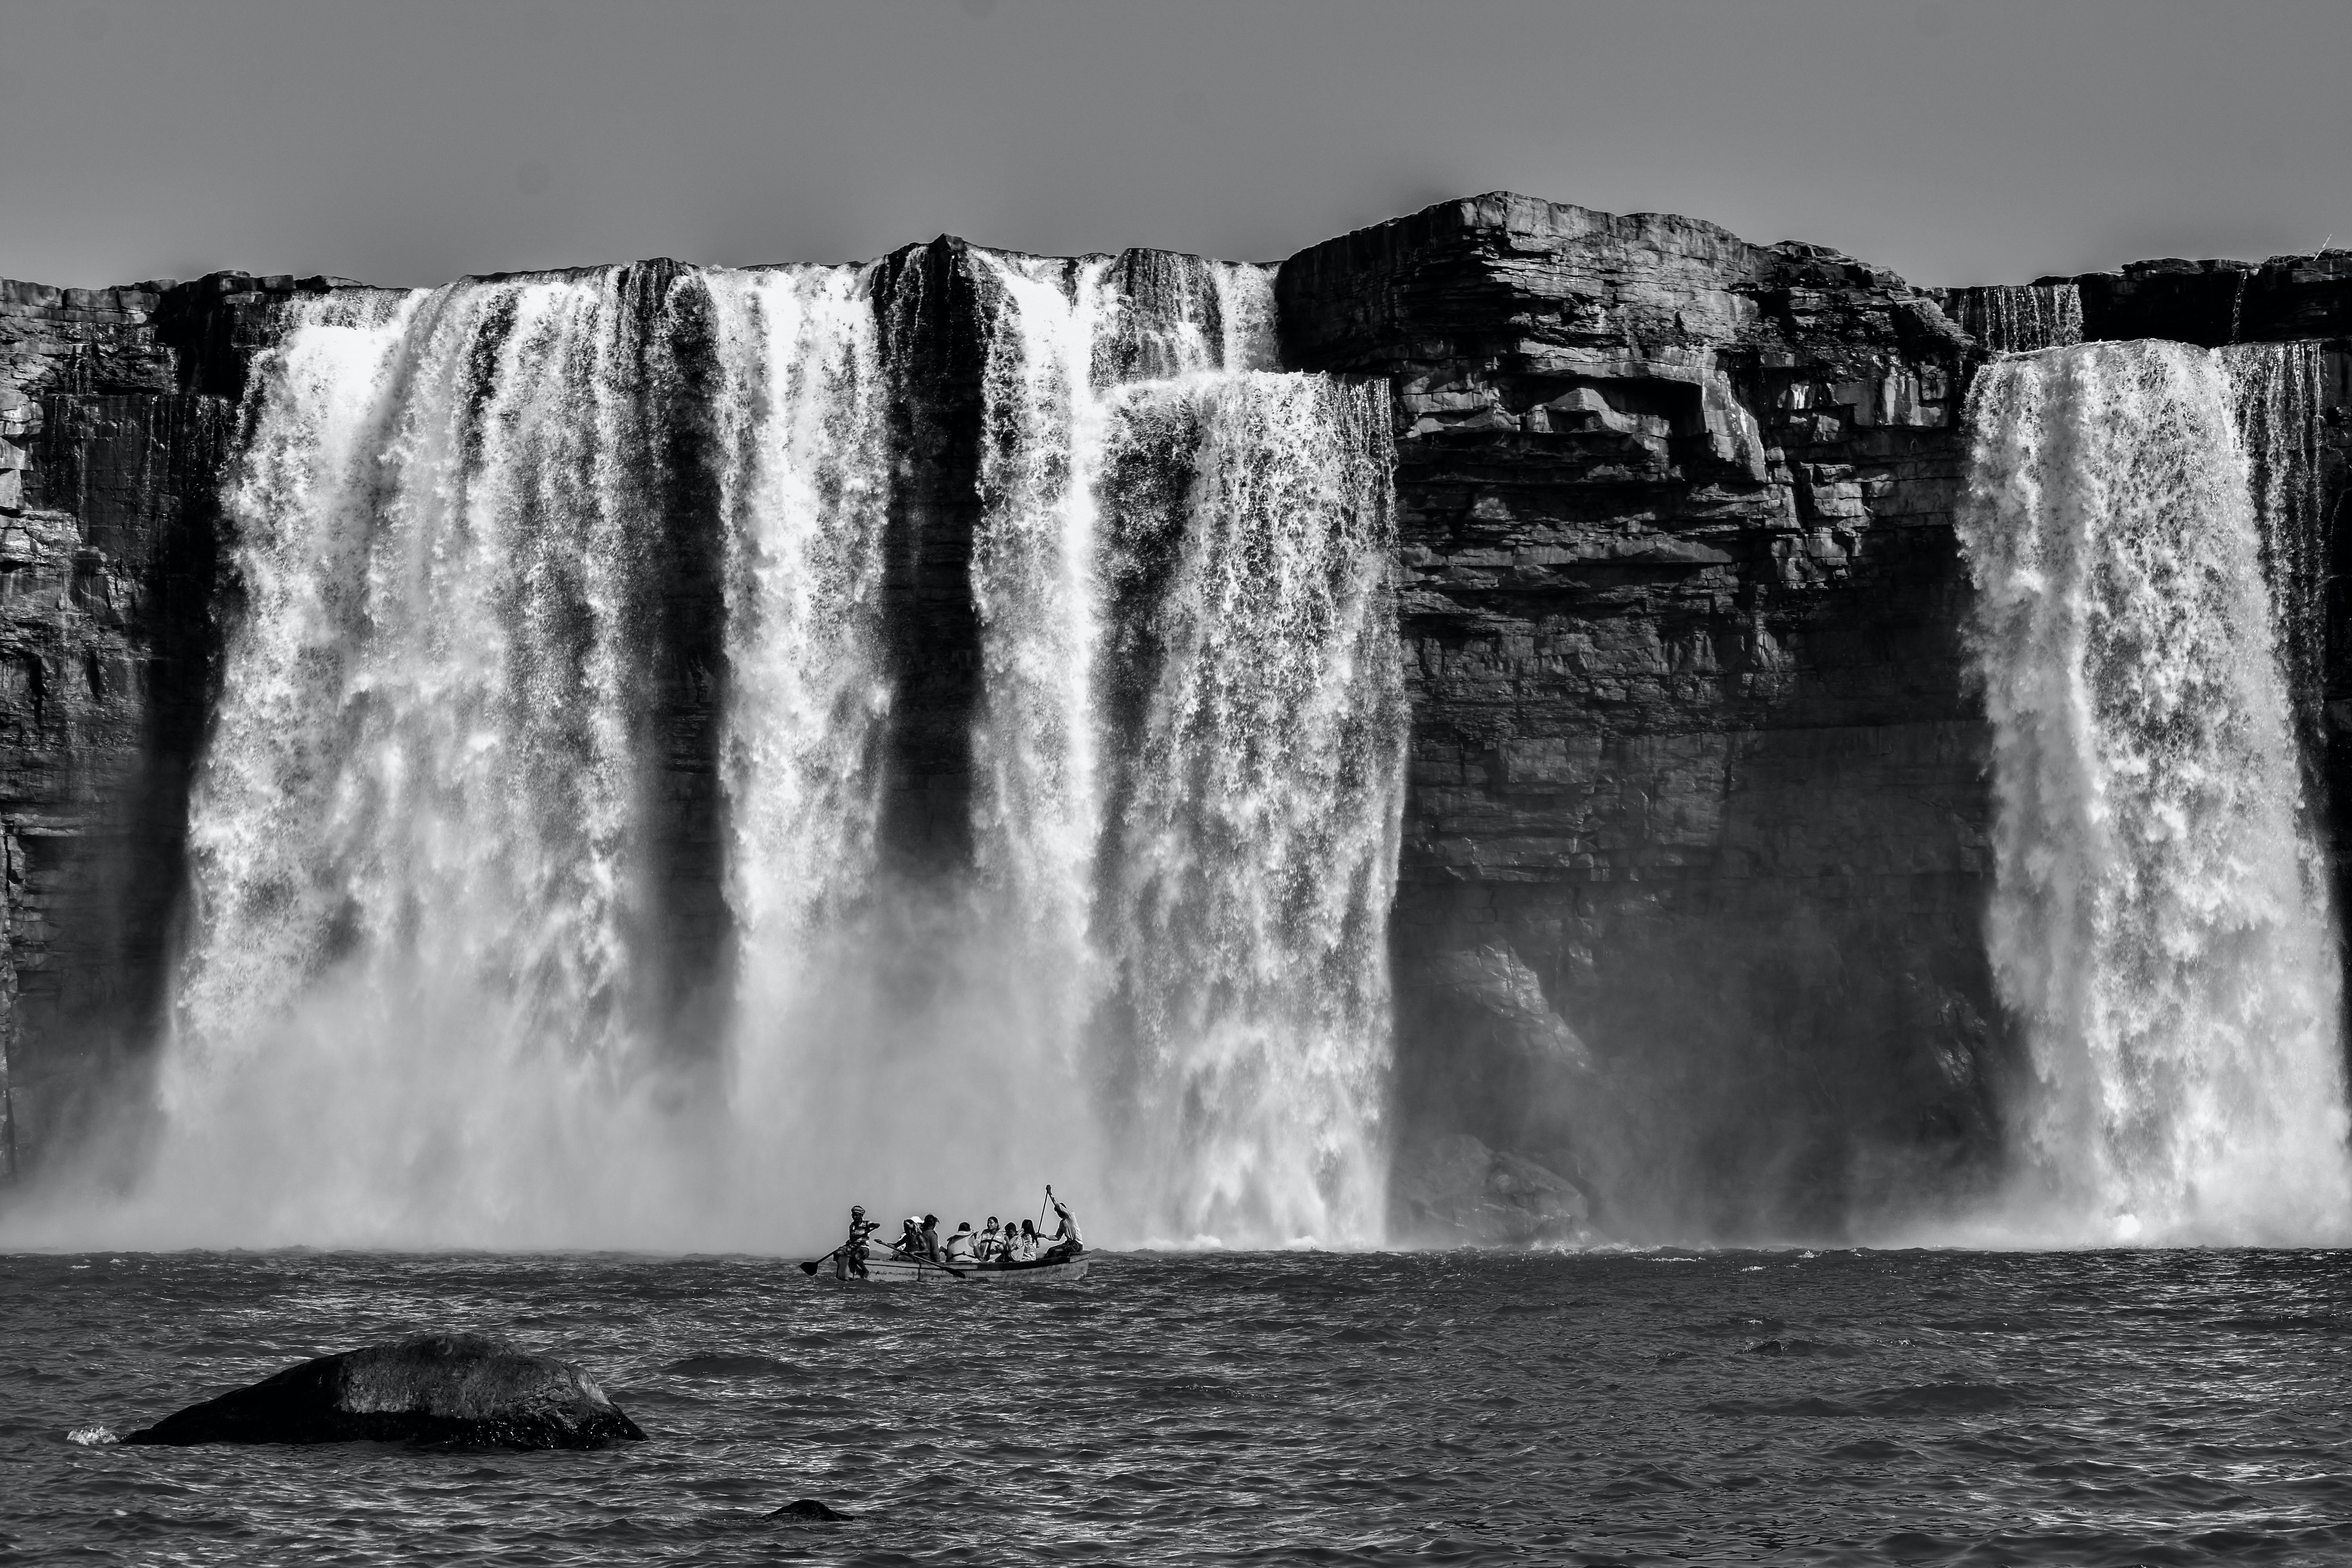 Grayscale Photography Of People Riding A Boat Near Waterfalls